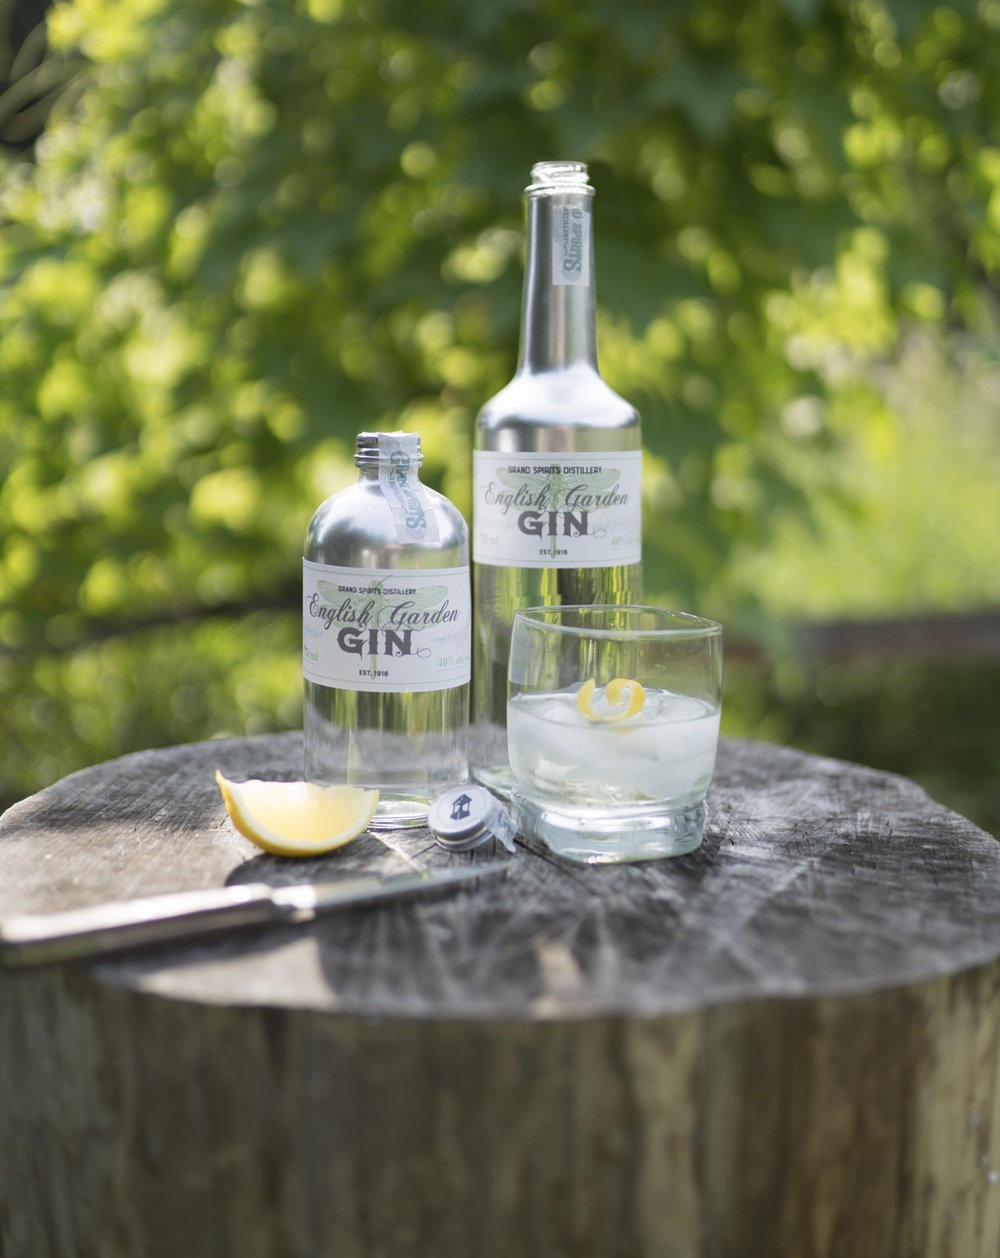 Package and label design for Grand Spirits Distillery English Garden Gin. Includes a small and big size for the Headwaters gin. Serve up with tonic water and a lemon.